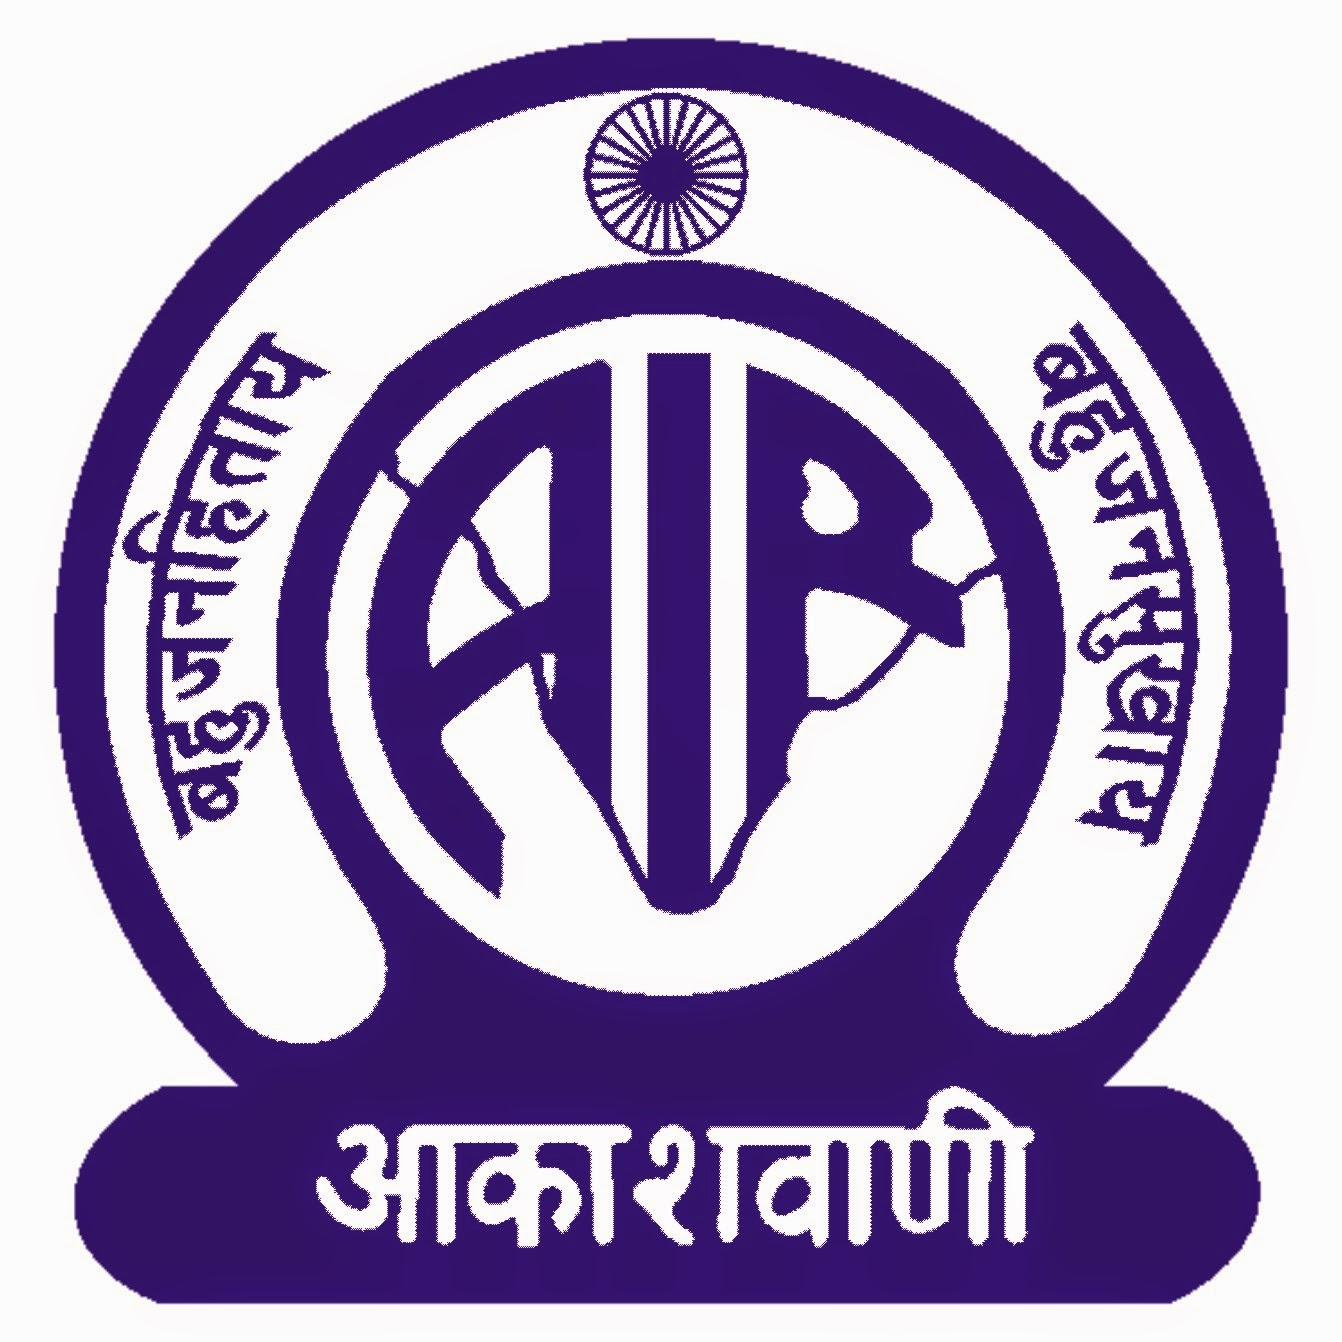 Now Purchase Prasar Bharati's Rare Recordings At AIR Office